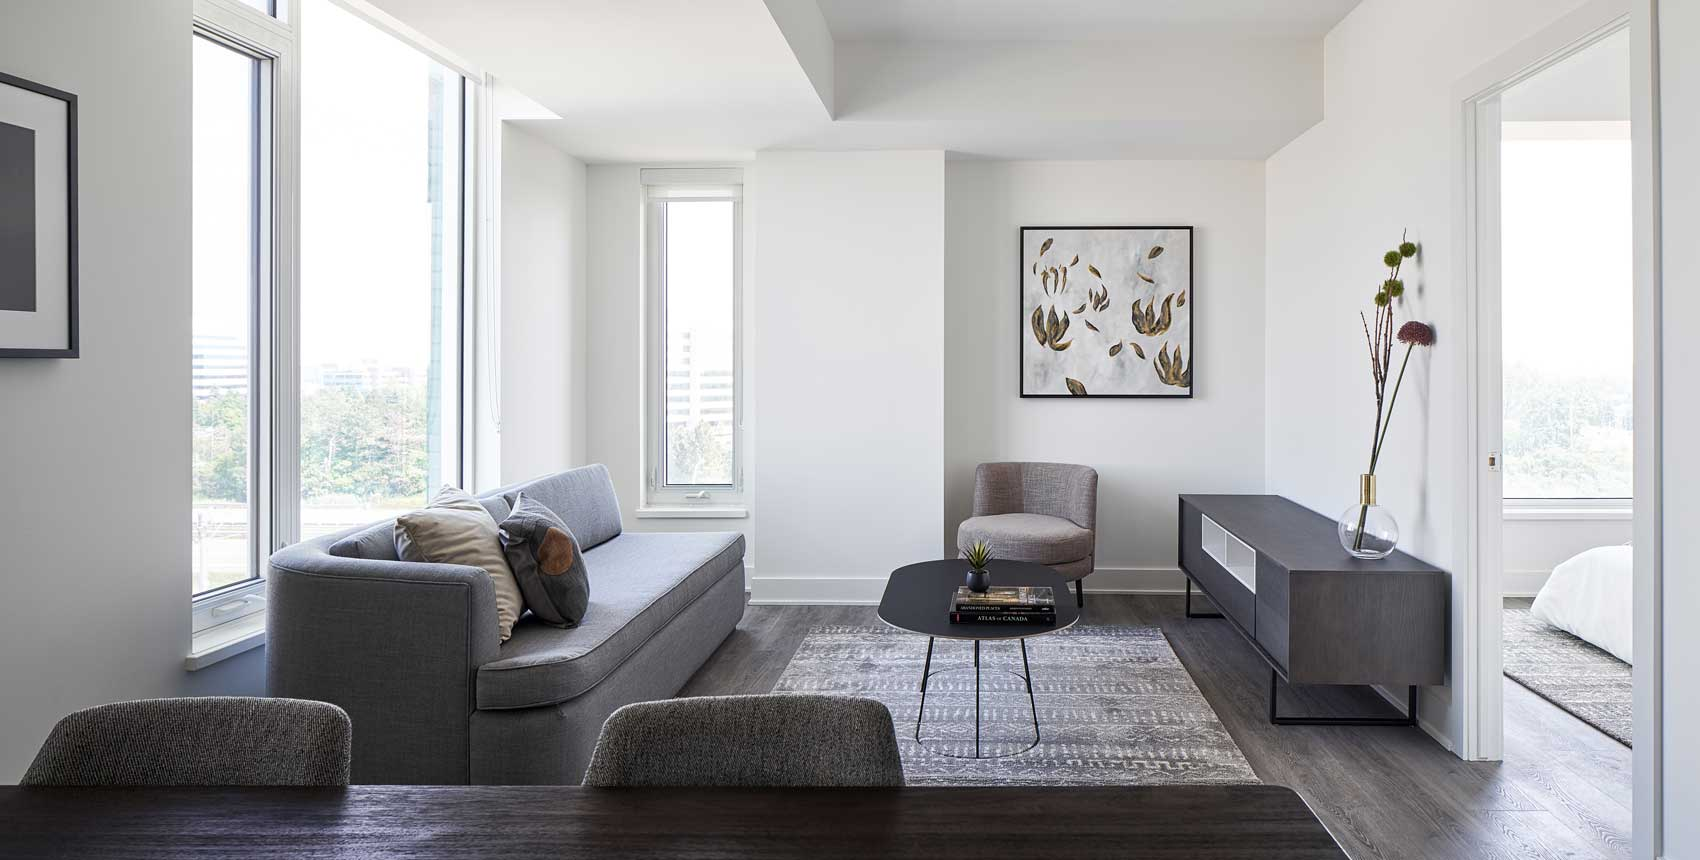 Rental of the Week: $2,380 for a brand new 2-bedroom near Blair Station